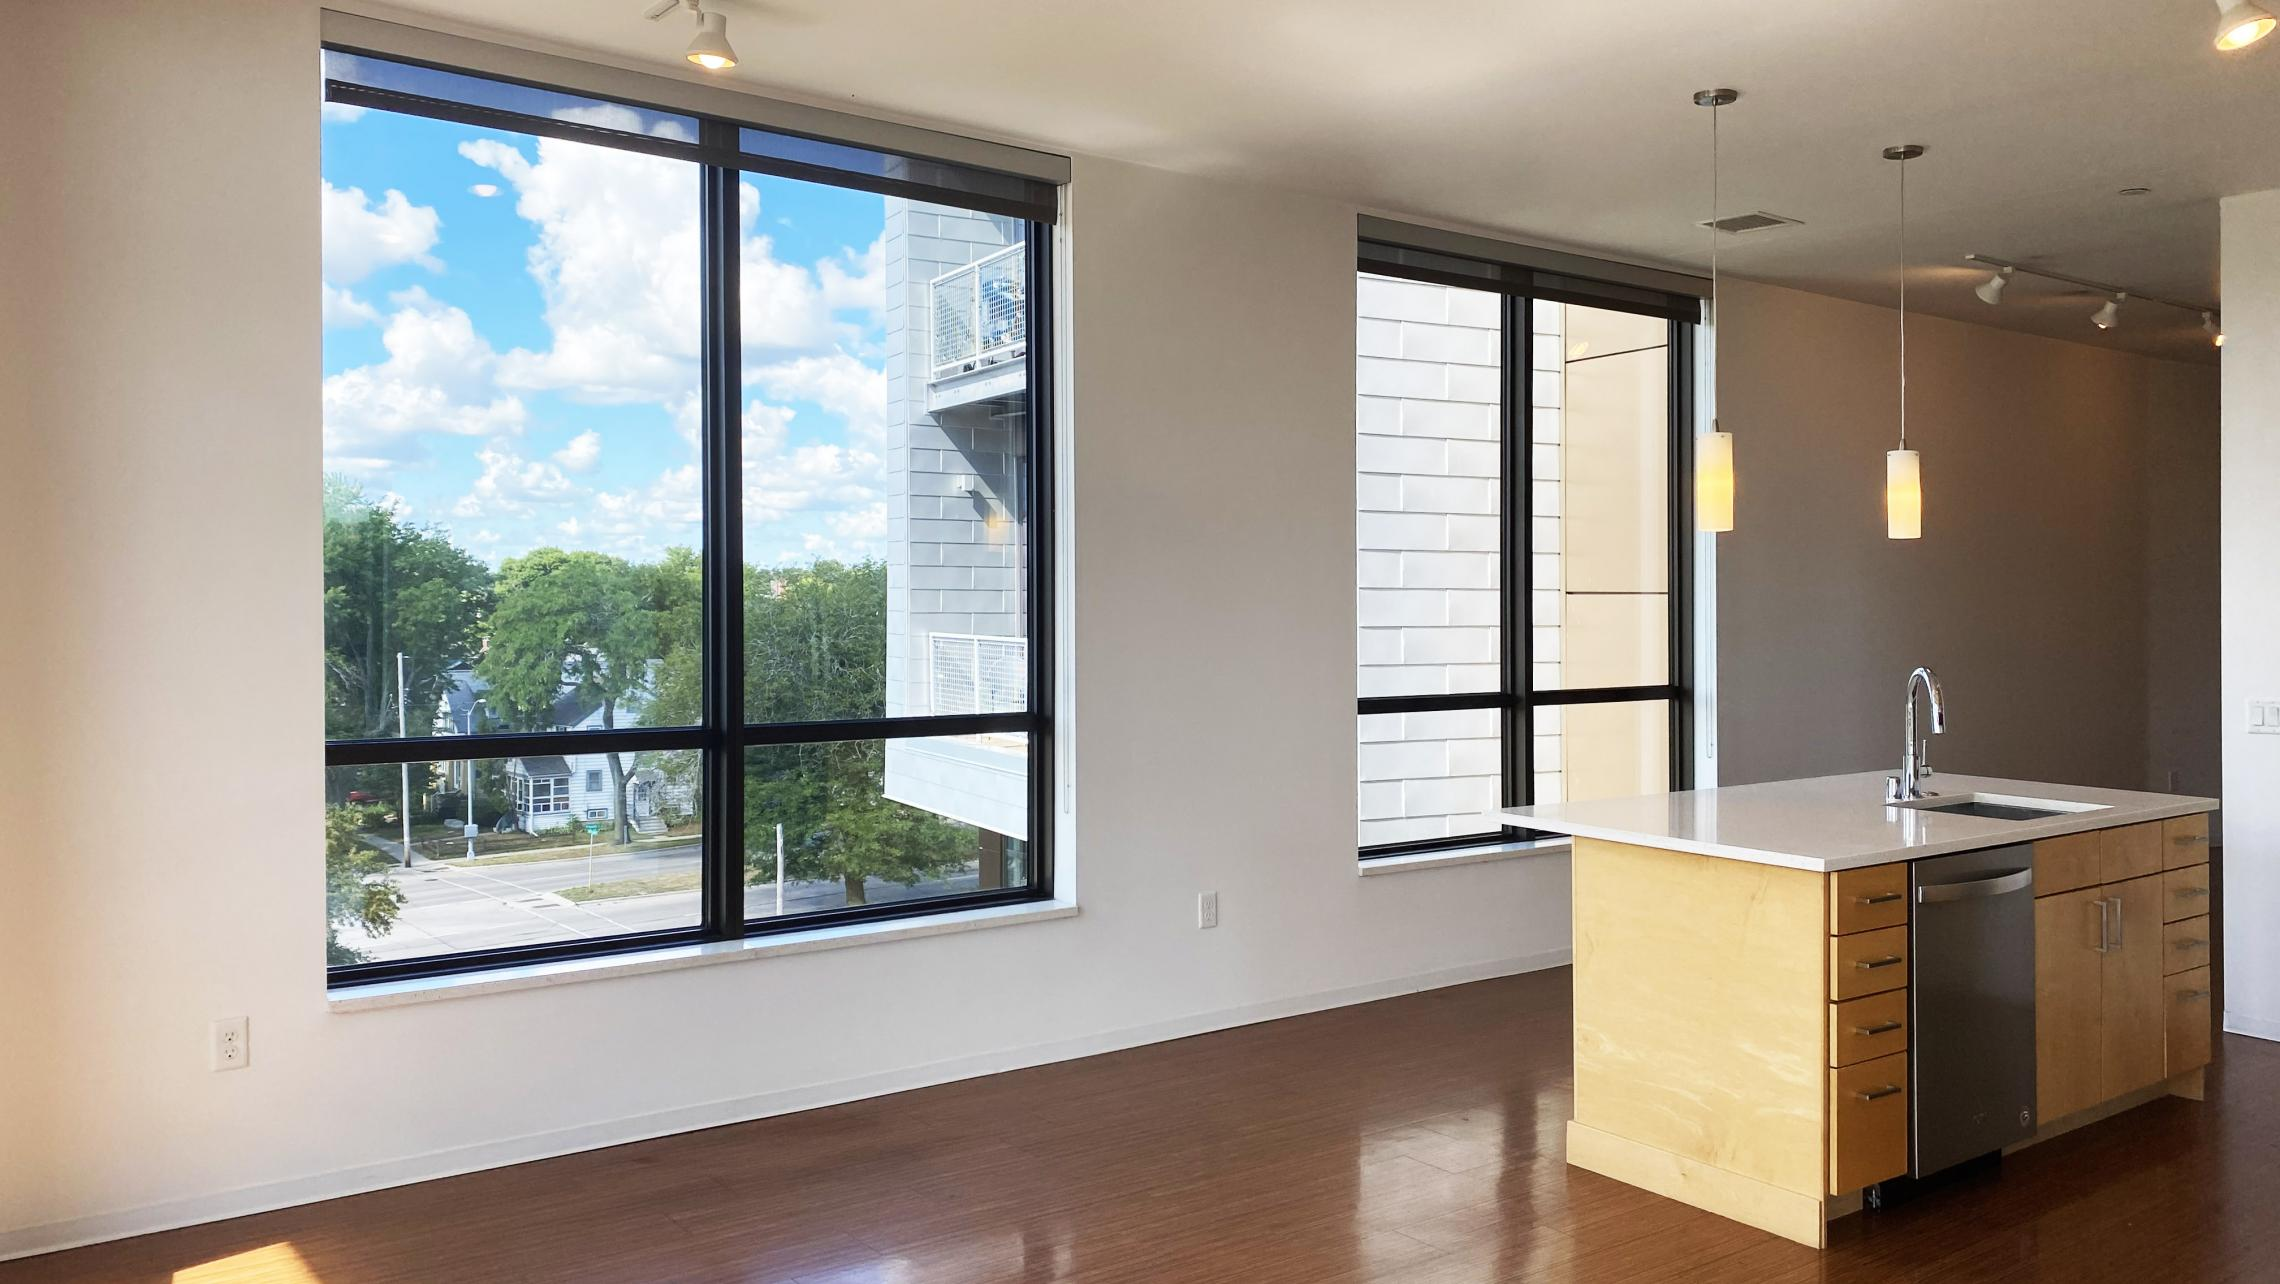 SEVEN27-at-The-Yards-Apartment-440-Two-bedroom-Corner-Lake-View-Modern-Upscale-Design-Balcony-Terrace-Fitness-Lounge-Courtyard-Dogs-Cats